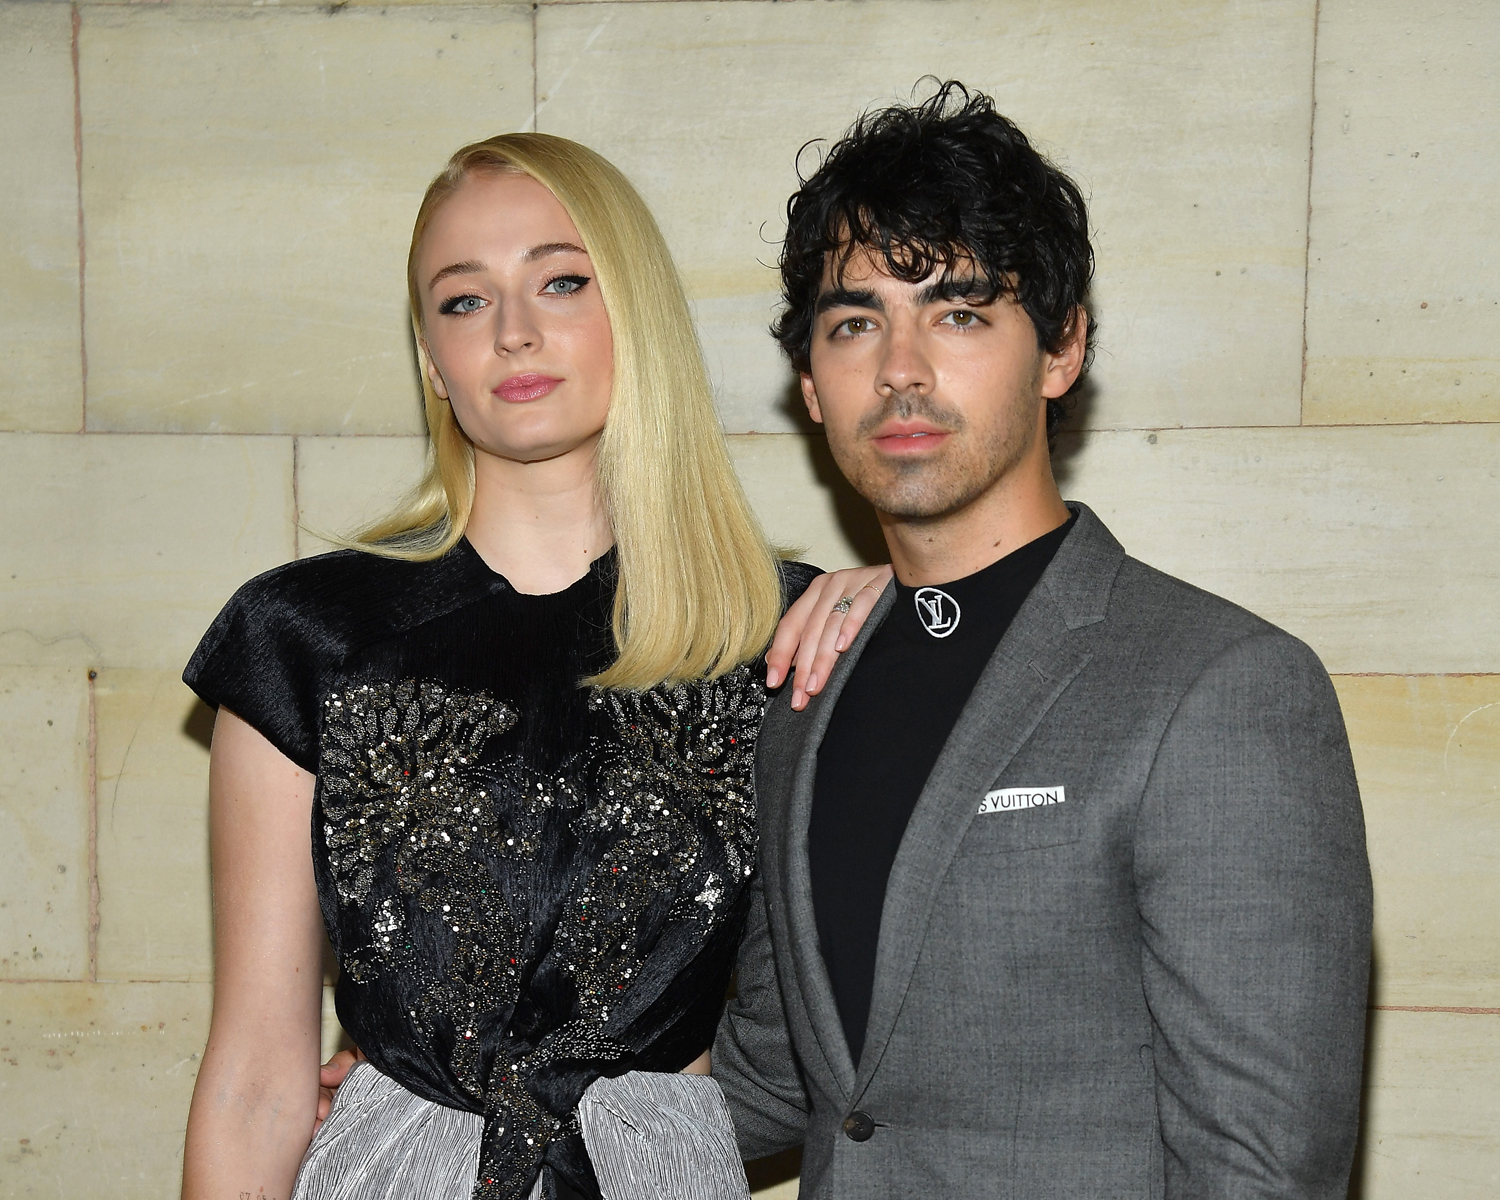 joe-jonas-and-sophie-turner-marry-in-las-vegas-following-billboard-awards